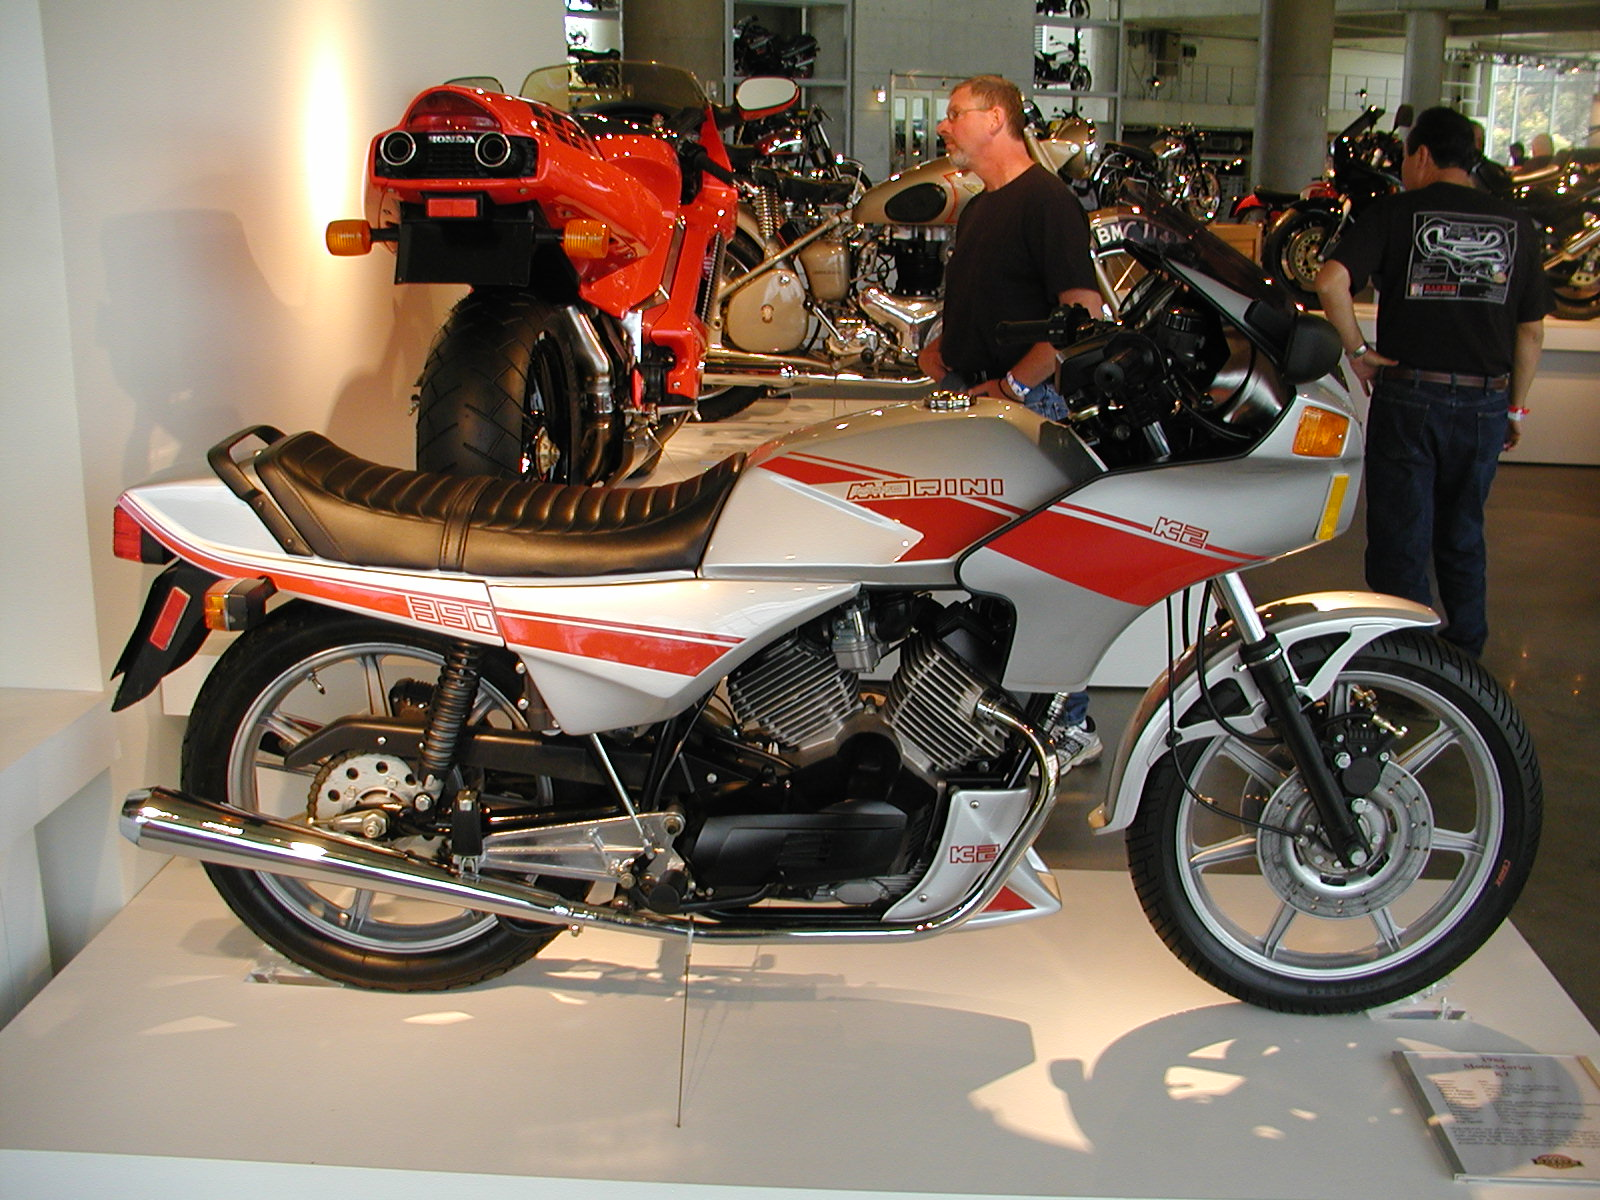 Moto morini dart photo - 1